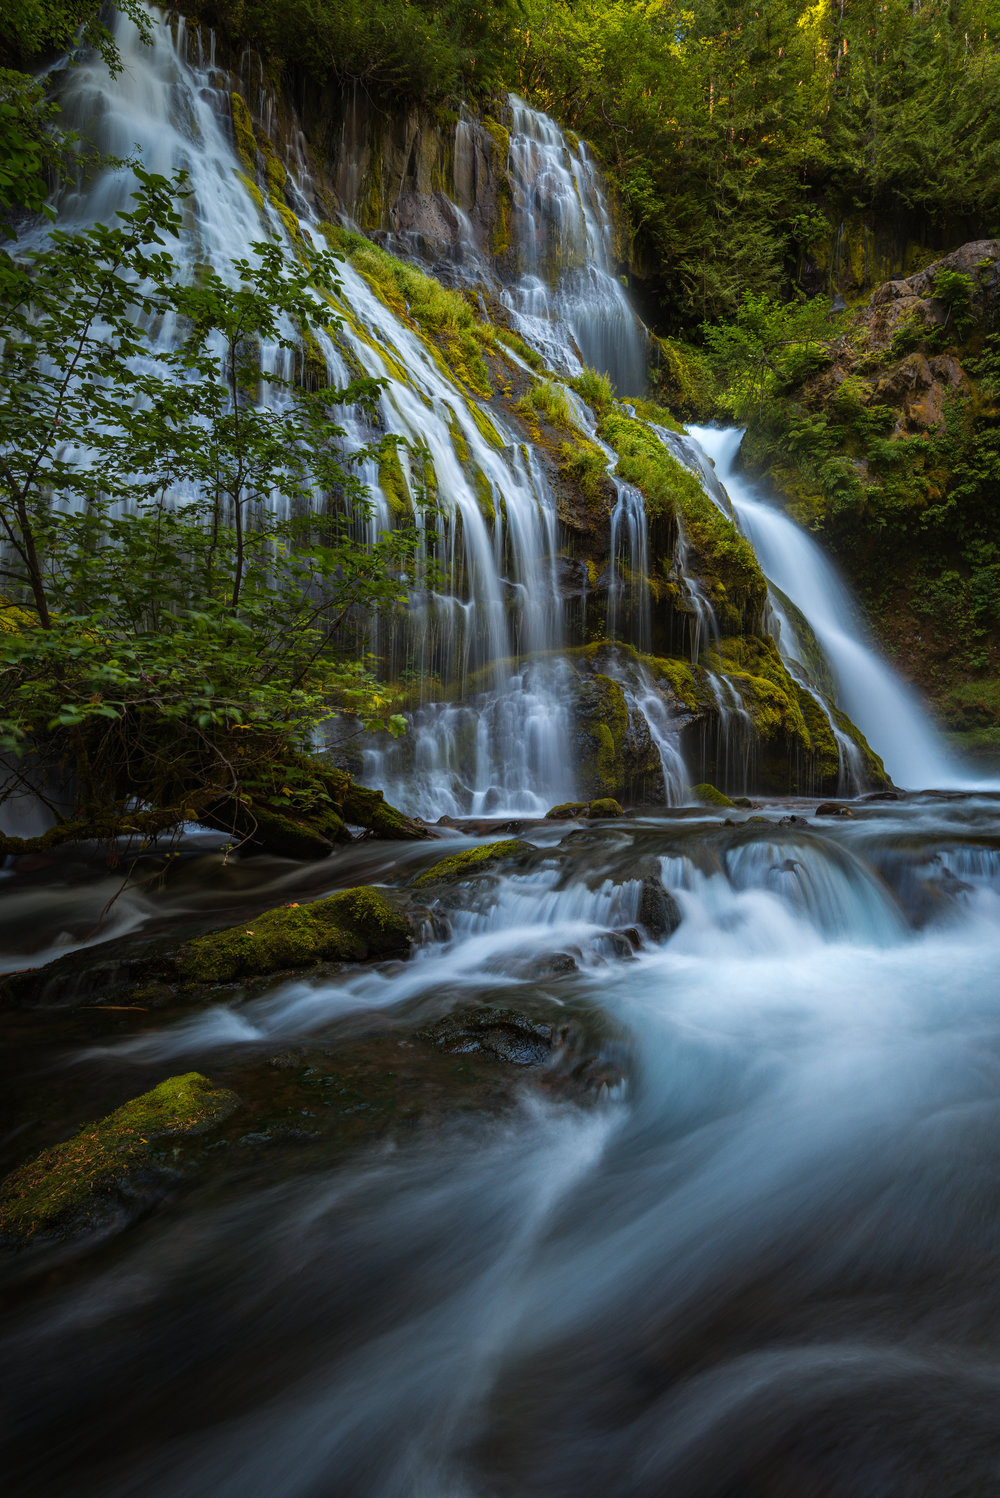 The portfolio piece I captured of Panther Creek Falls once the right conditions finally presented themselves.